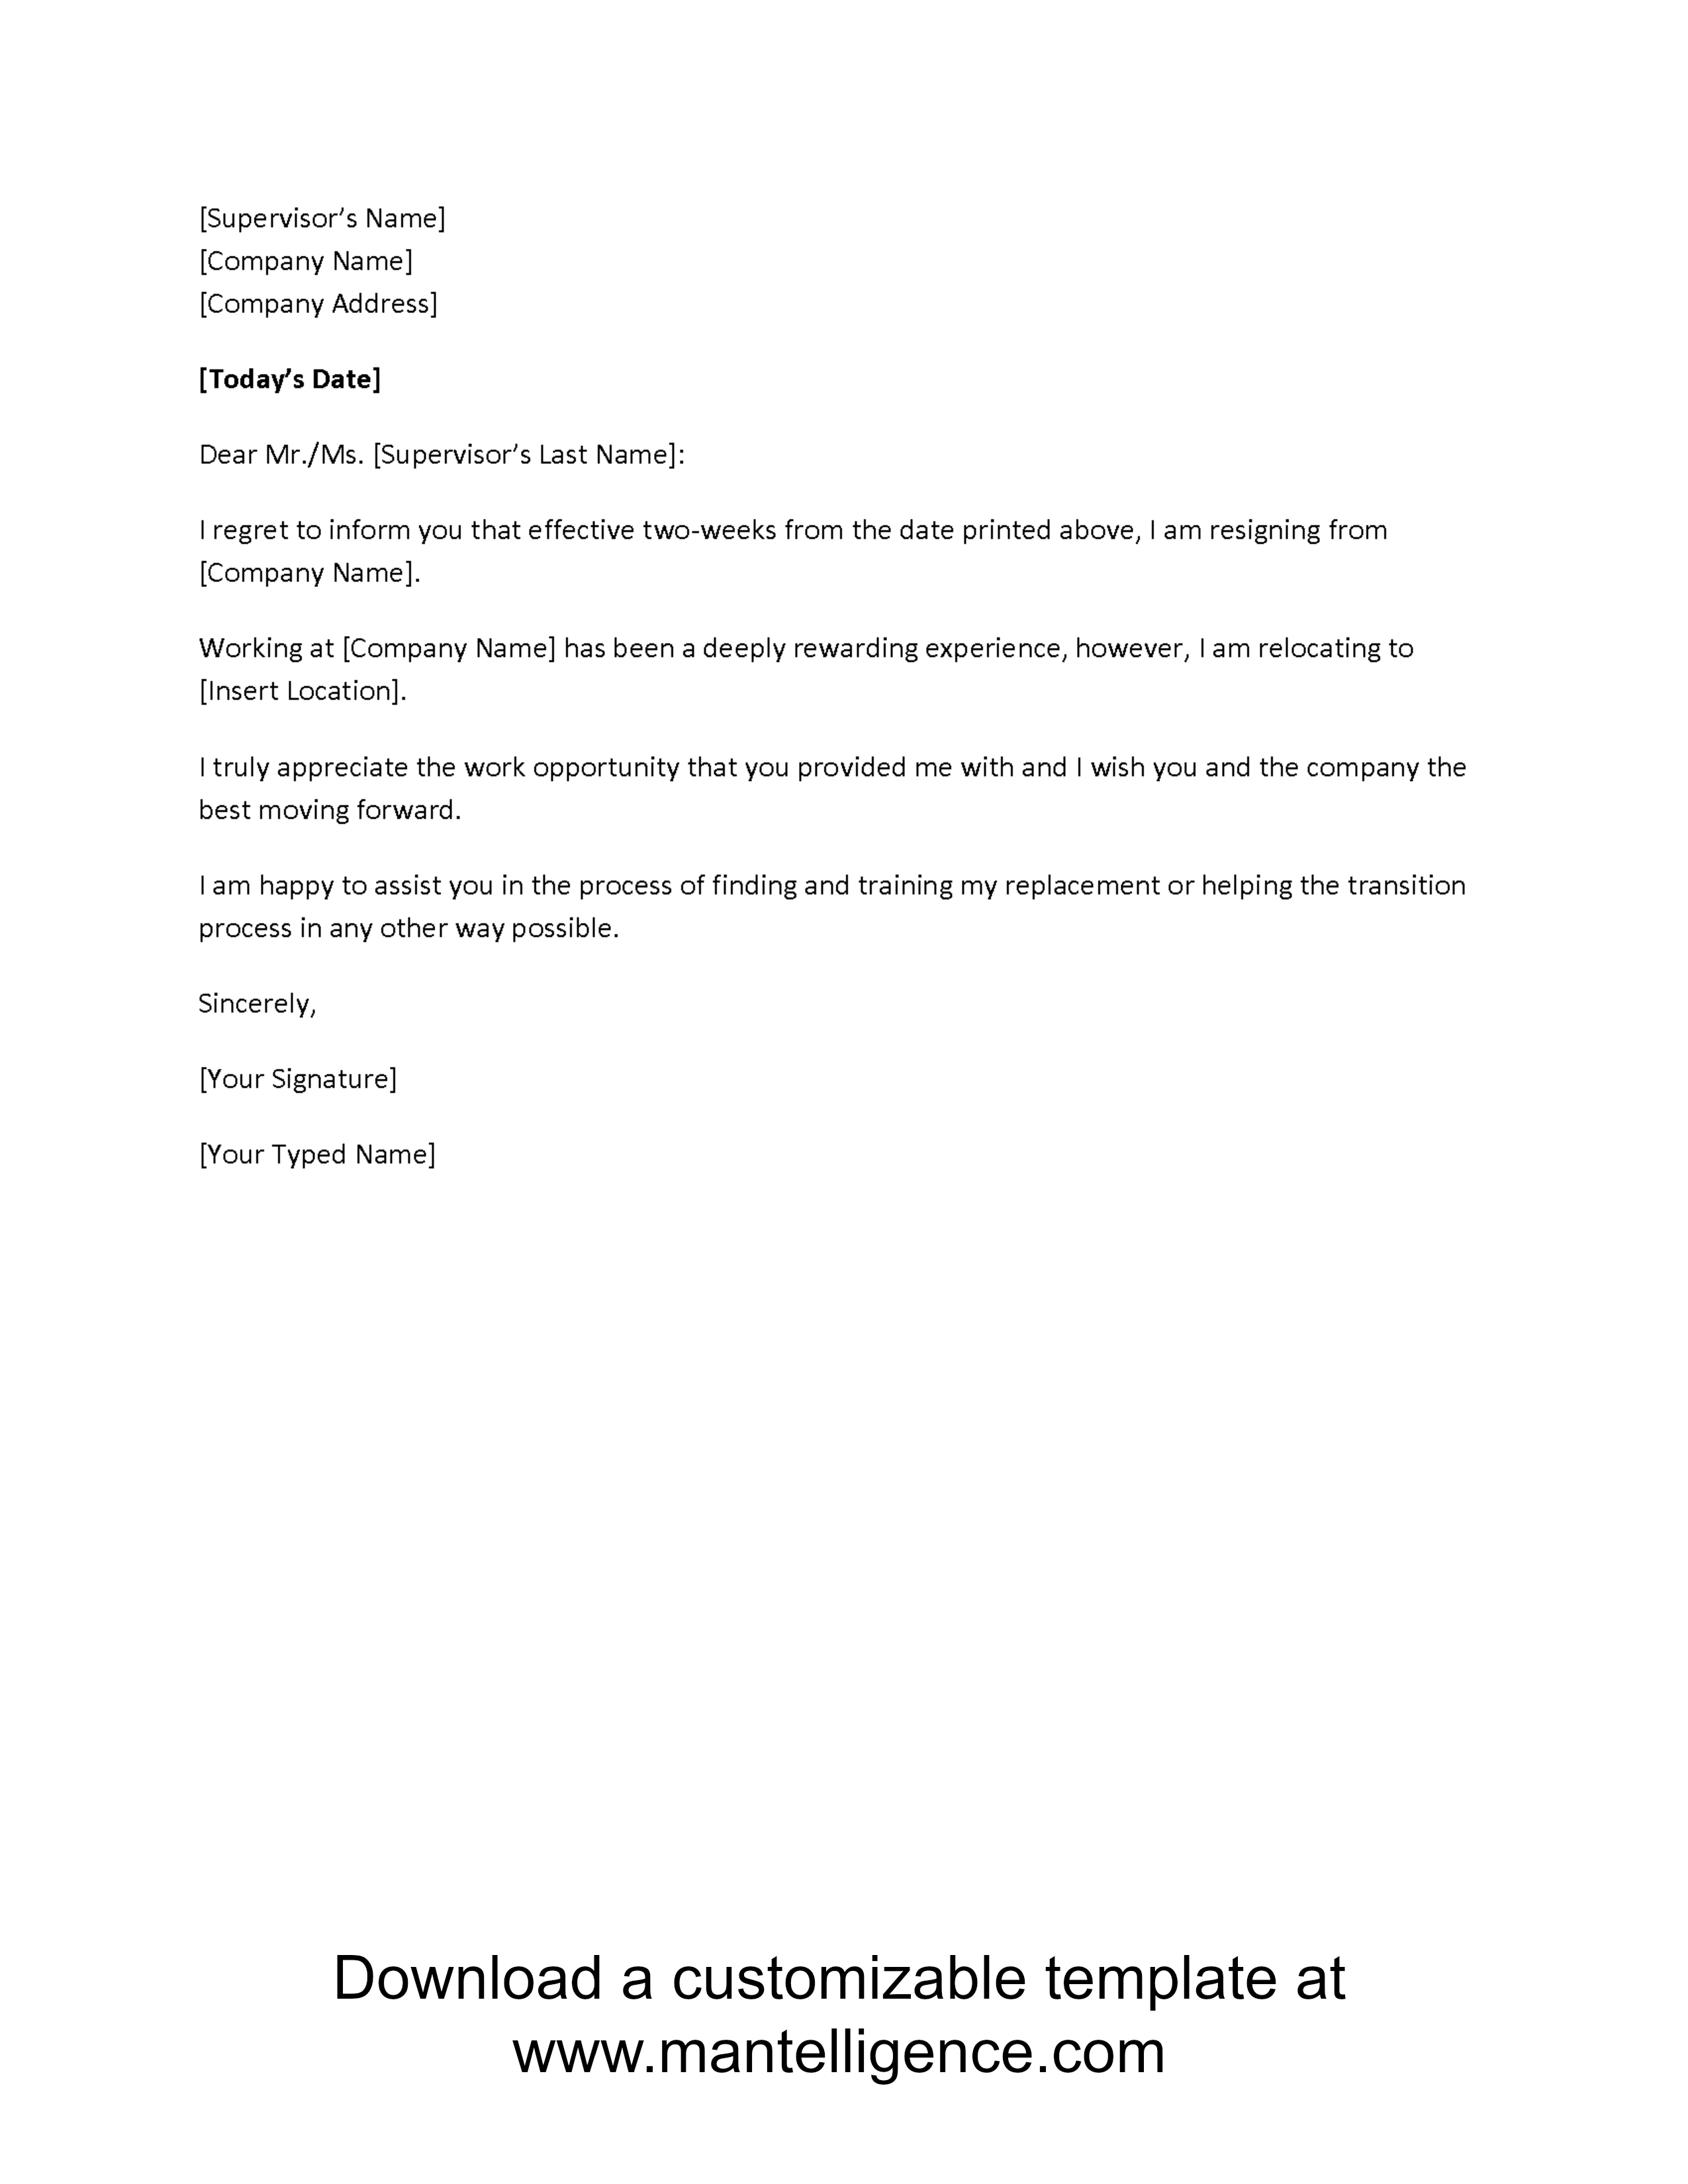 Employee Relocation Letter Template - 3 Highly Professional Two Weeks Notice Letter Templates